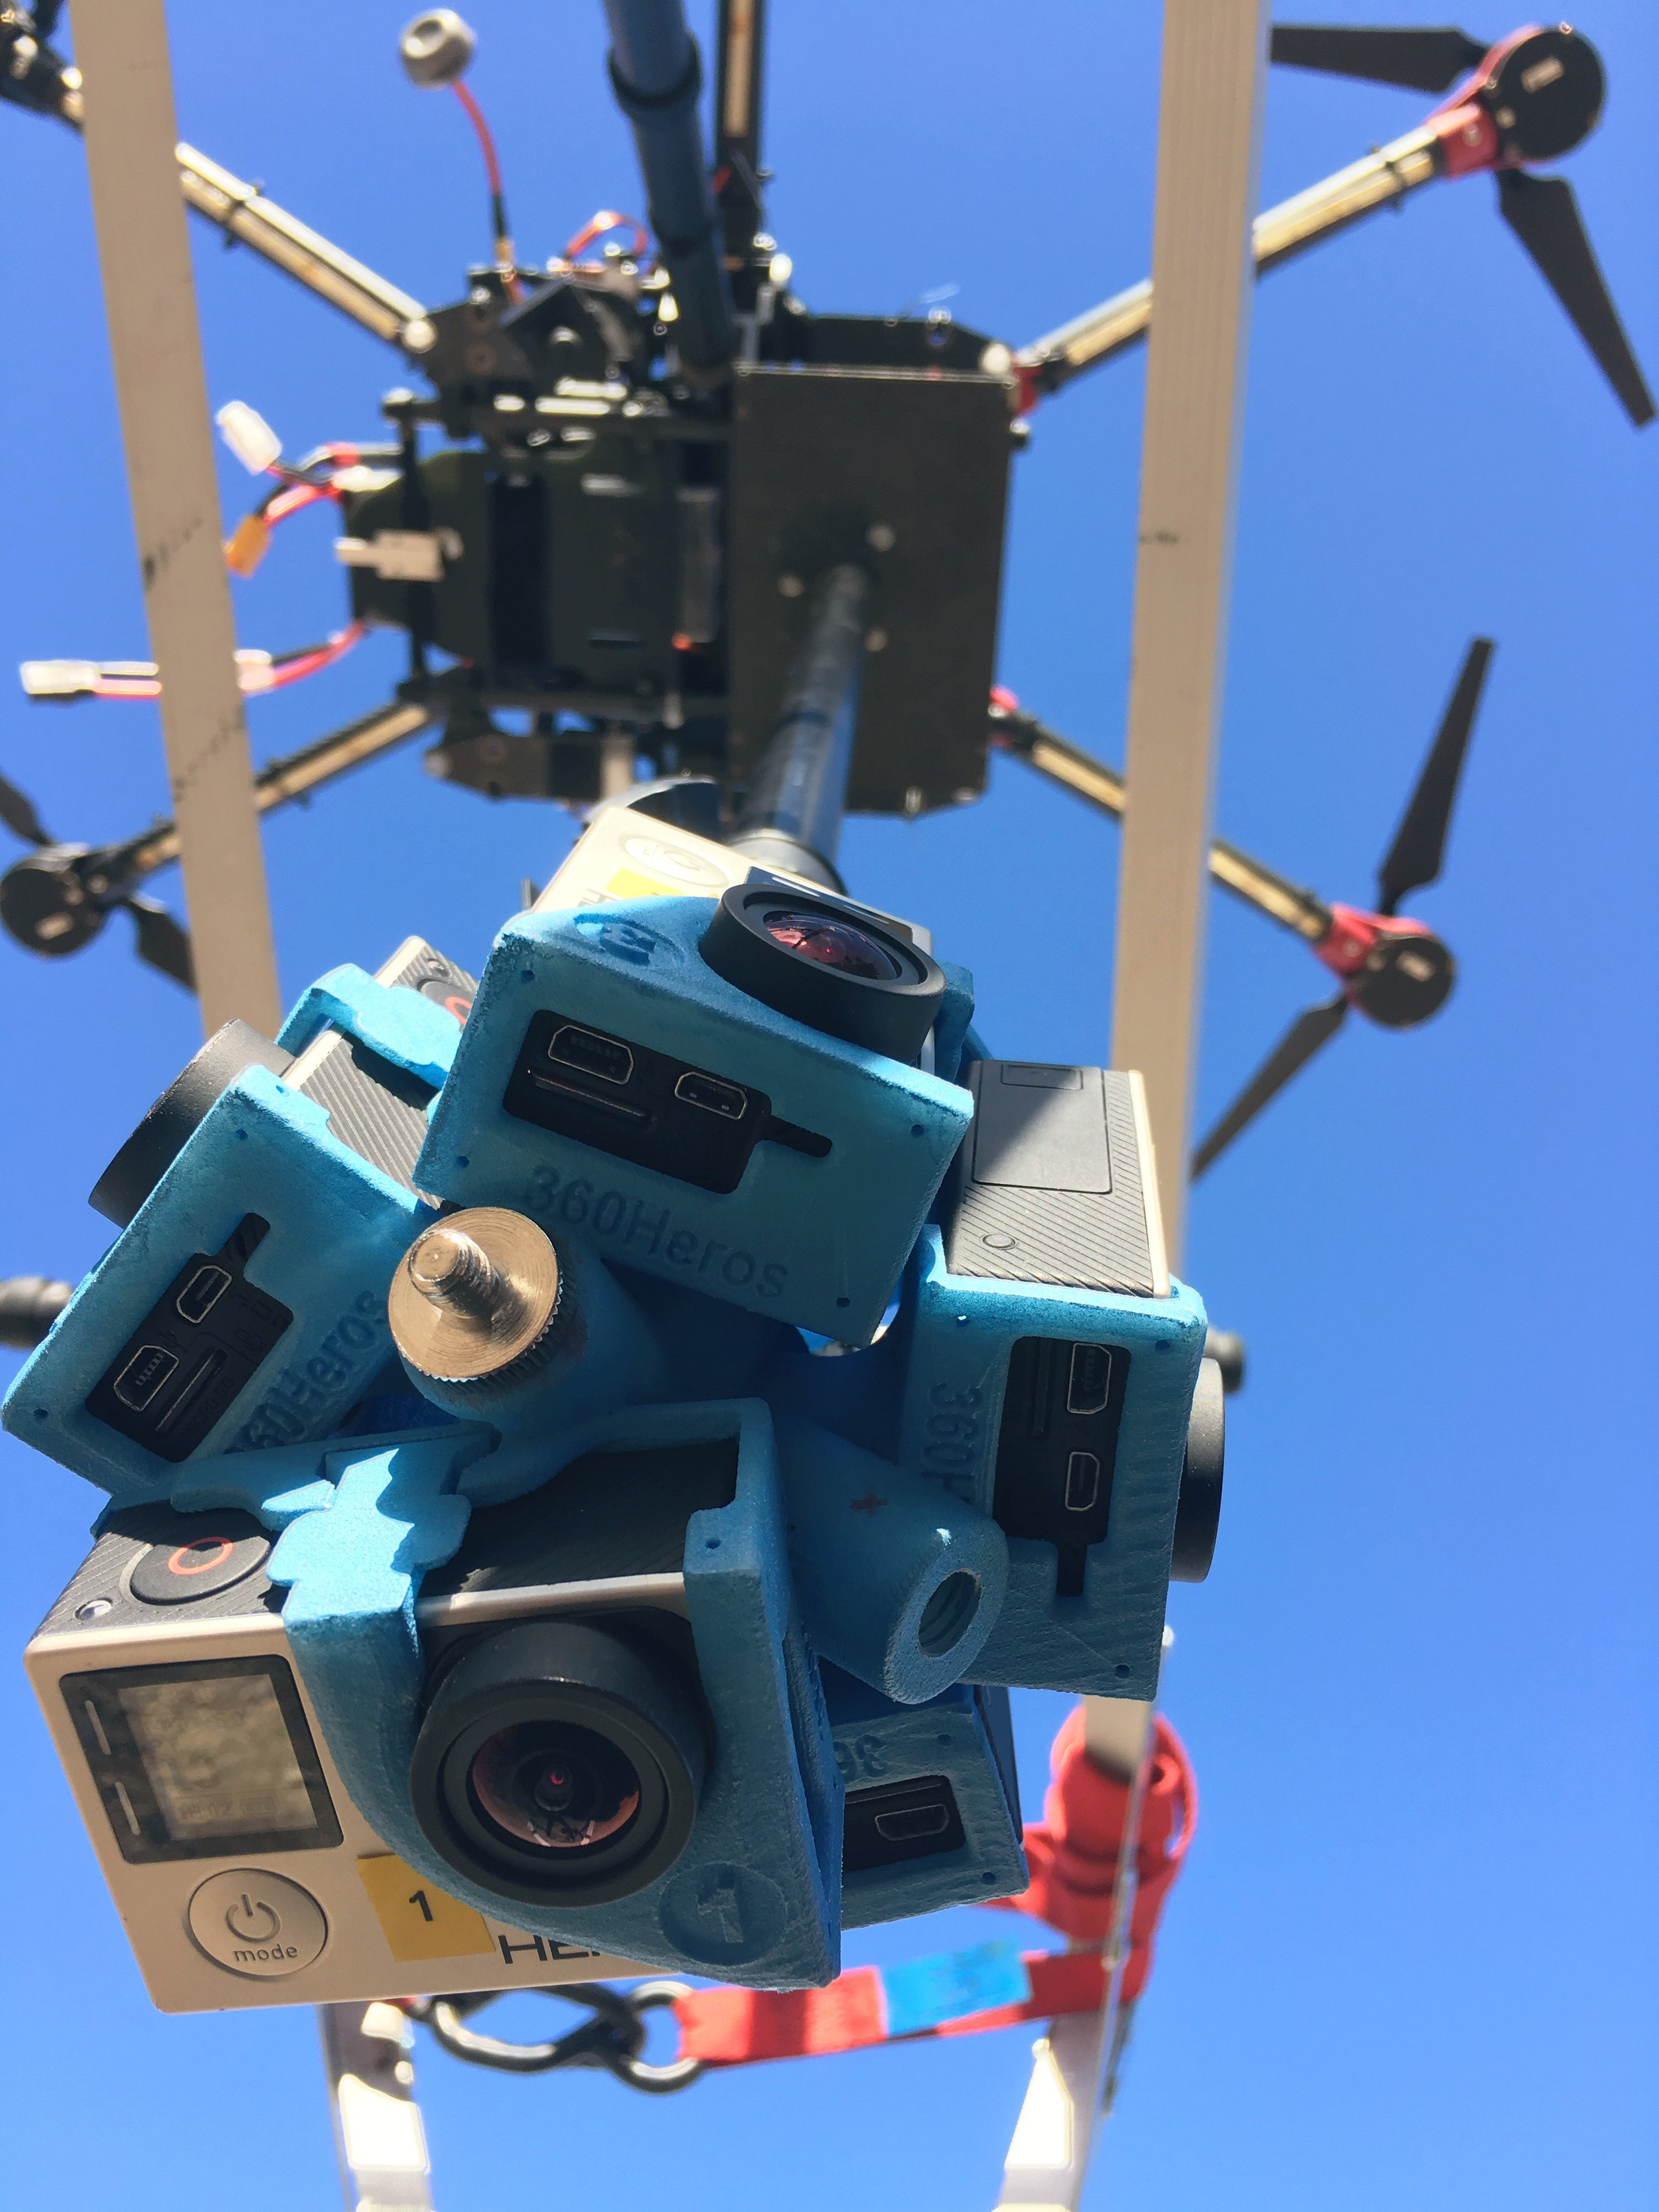 S900 drone 360 filming gopro